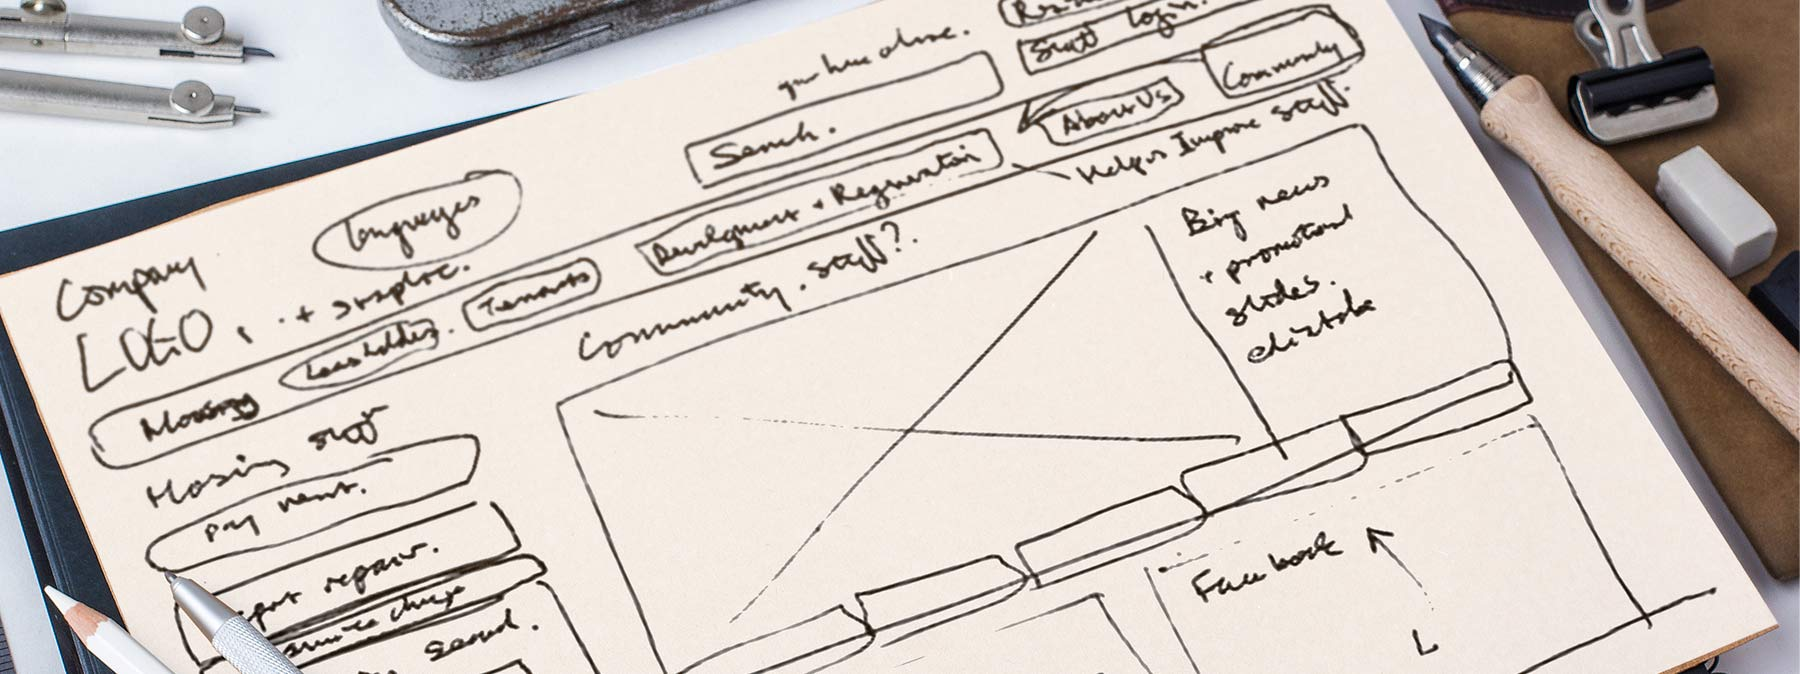 econclub website wireframes